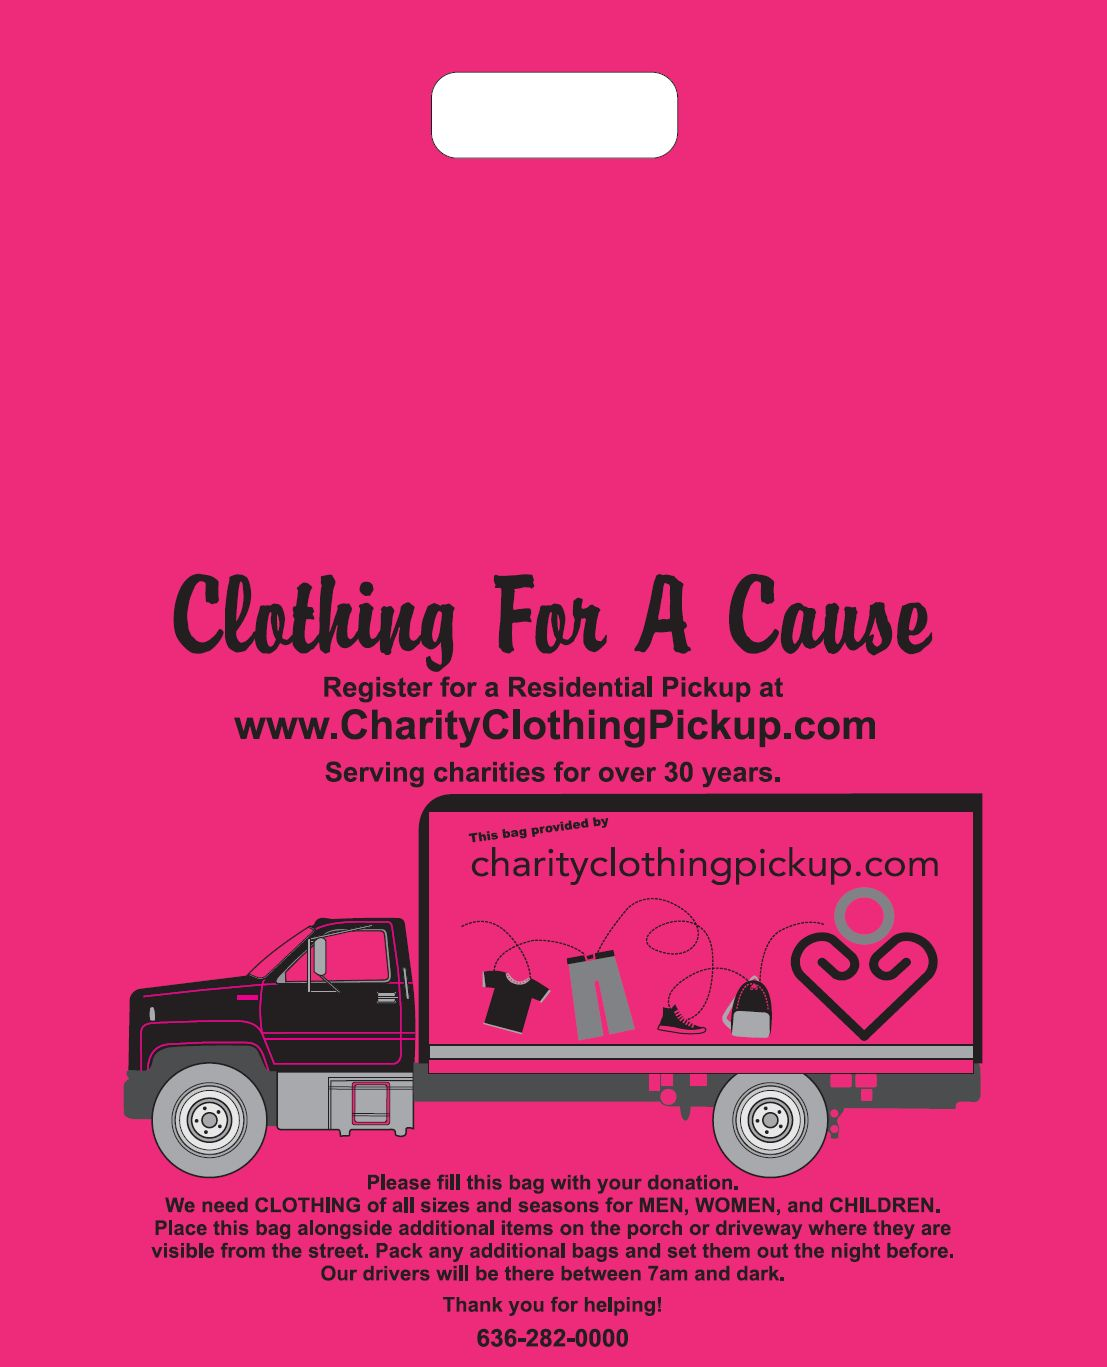 Charity Clothing Pickup - Collecting Clothing for a Cause